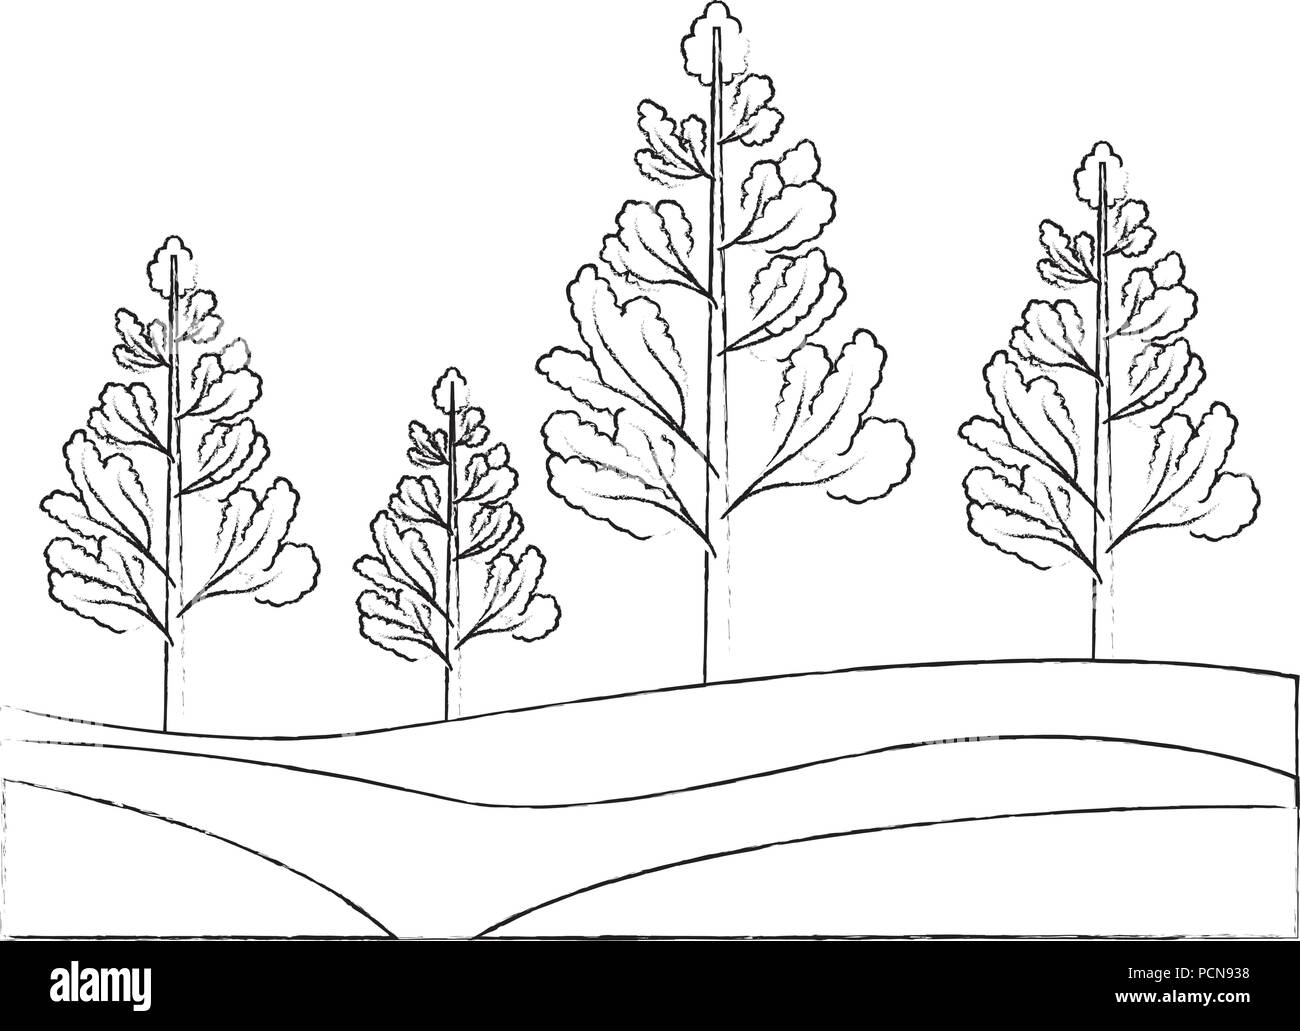 Nature Trees Forest Foliage Botanical Vector Illustration Hand Drawing Stock Vector Image Art Alamy